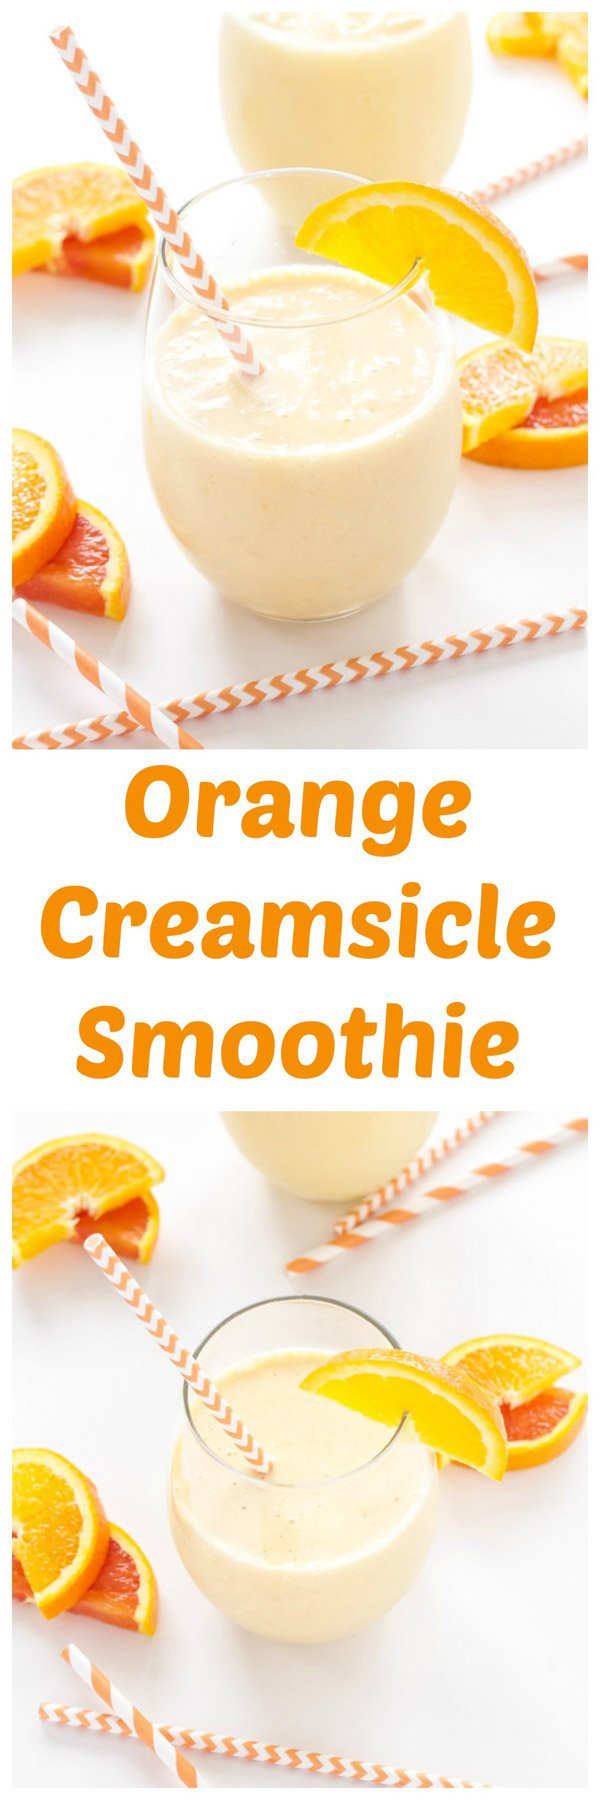 Orange Creamsicle Smoothie | A creamy, citrusy, smoothie with the perfect combination of orange and vanilla! | www.reciperunner.com